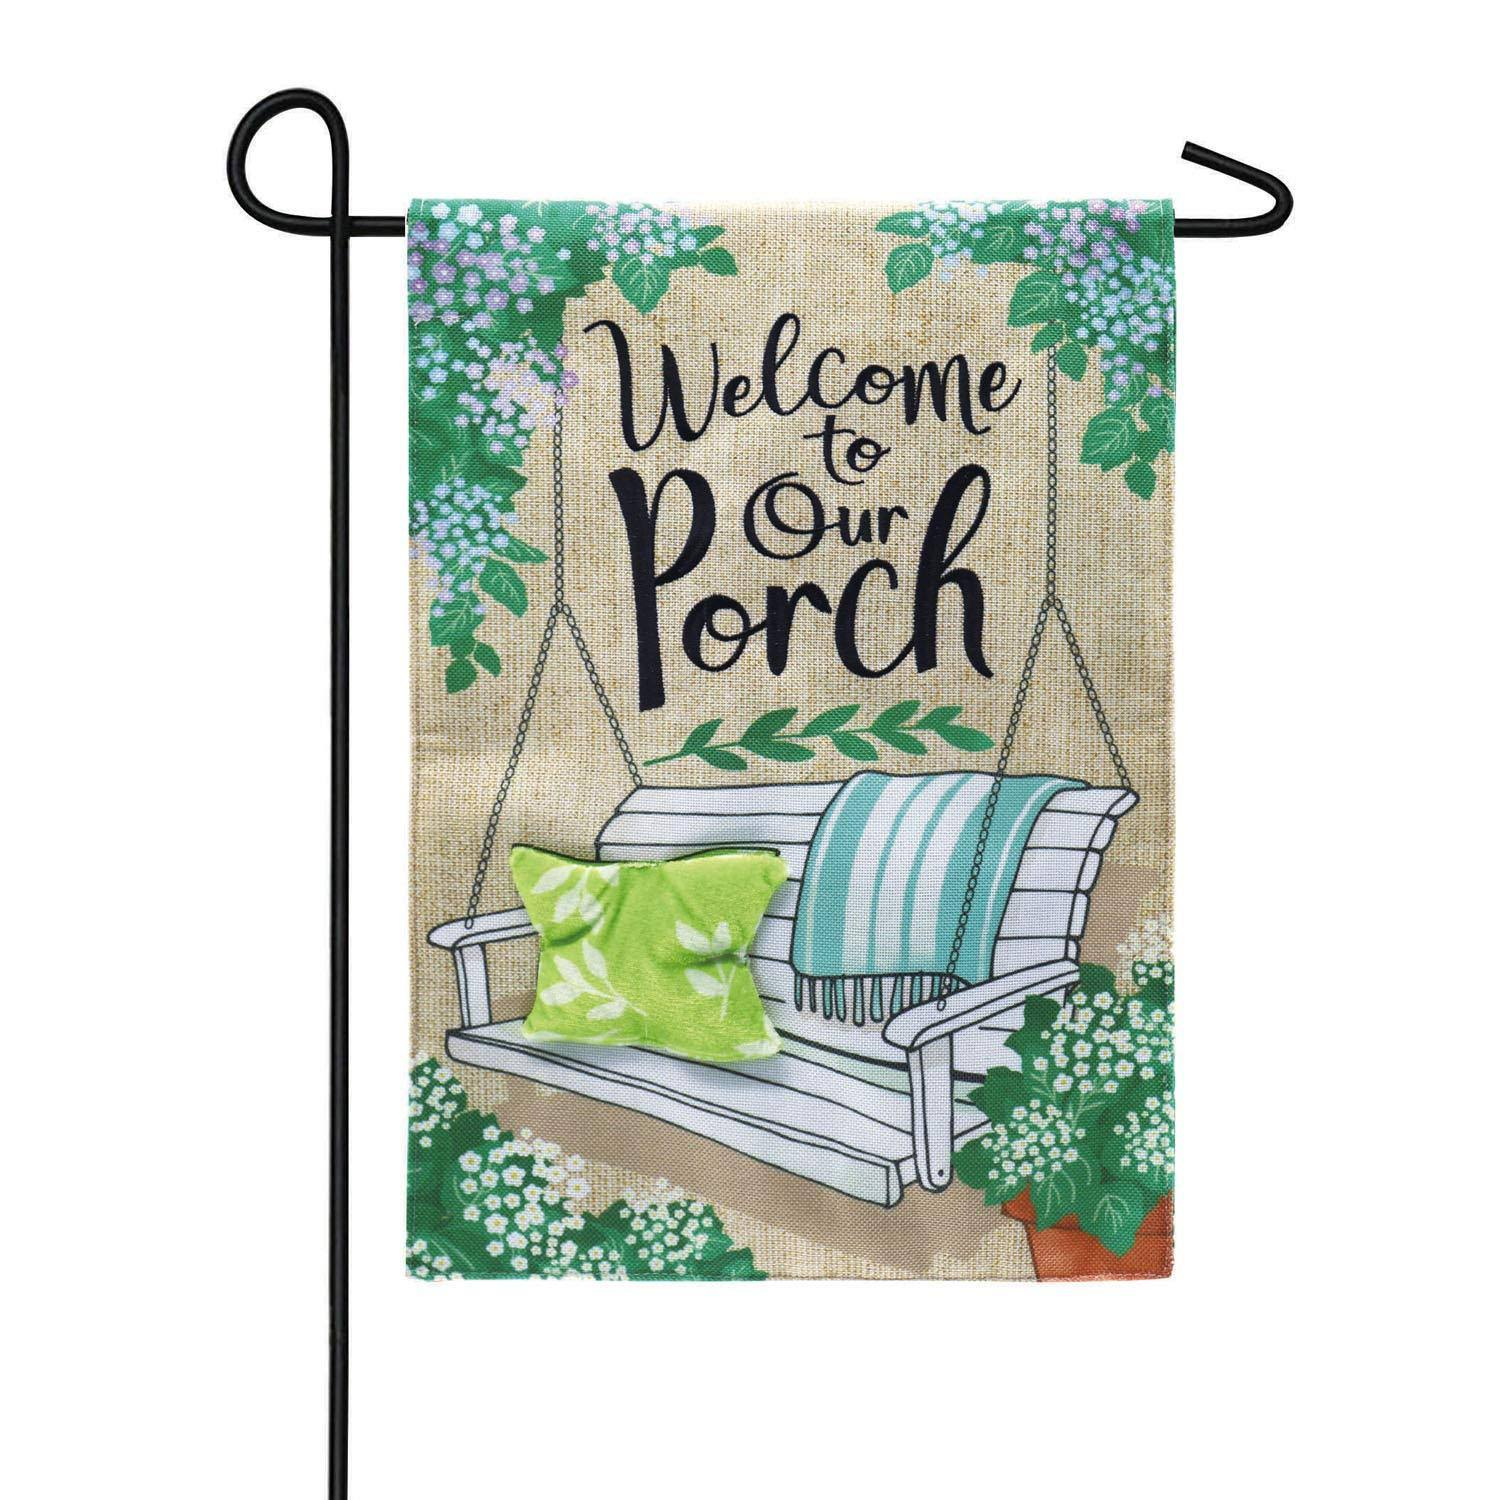 Evergreen Porch Swing Welcome Burlap Garden Flags